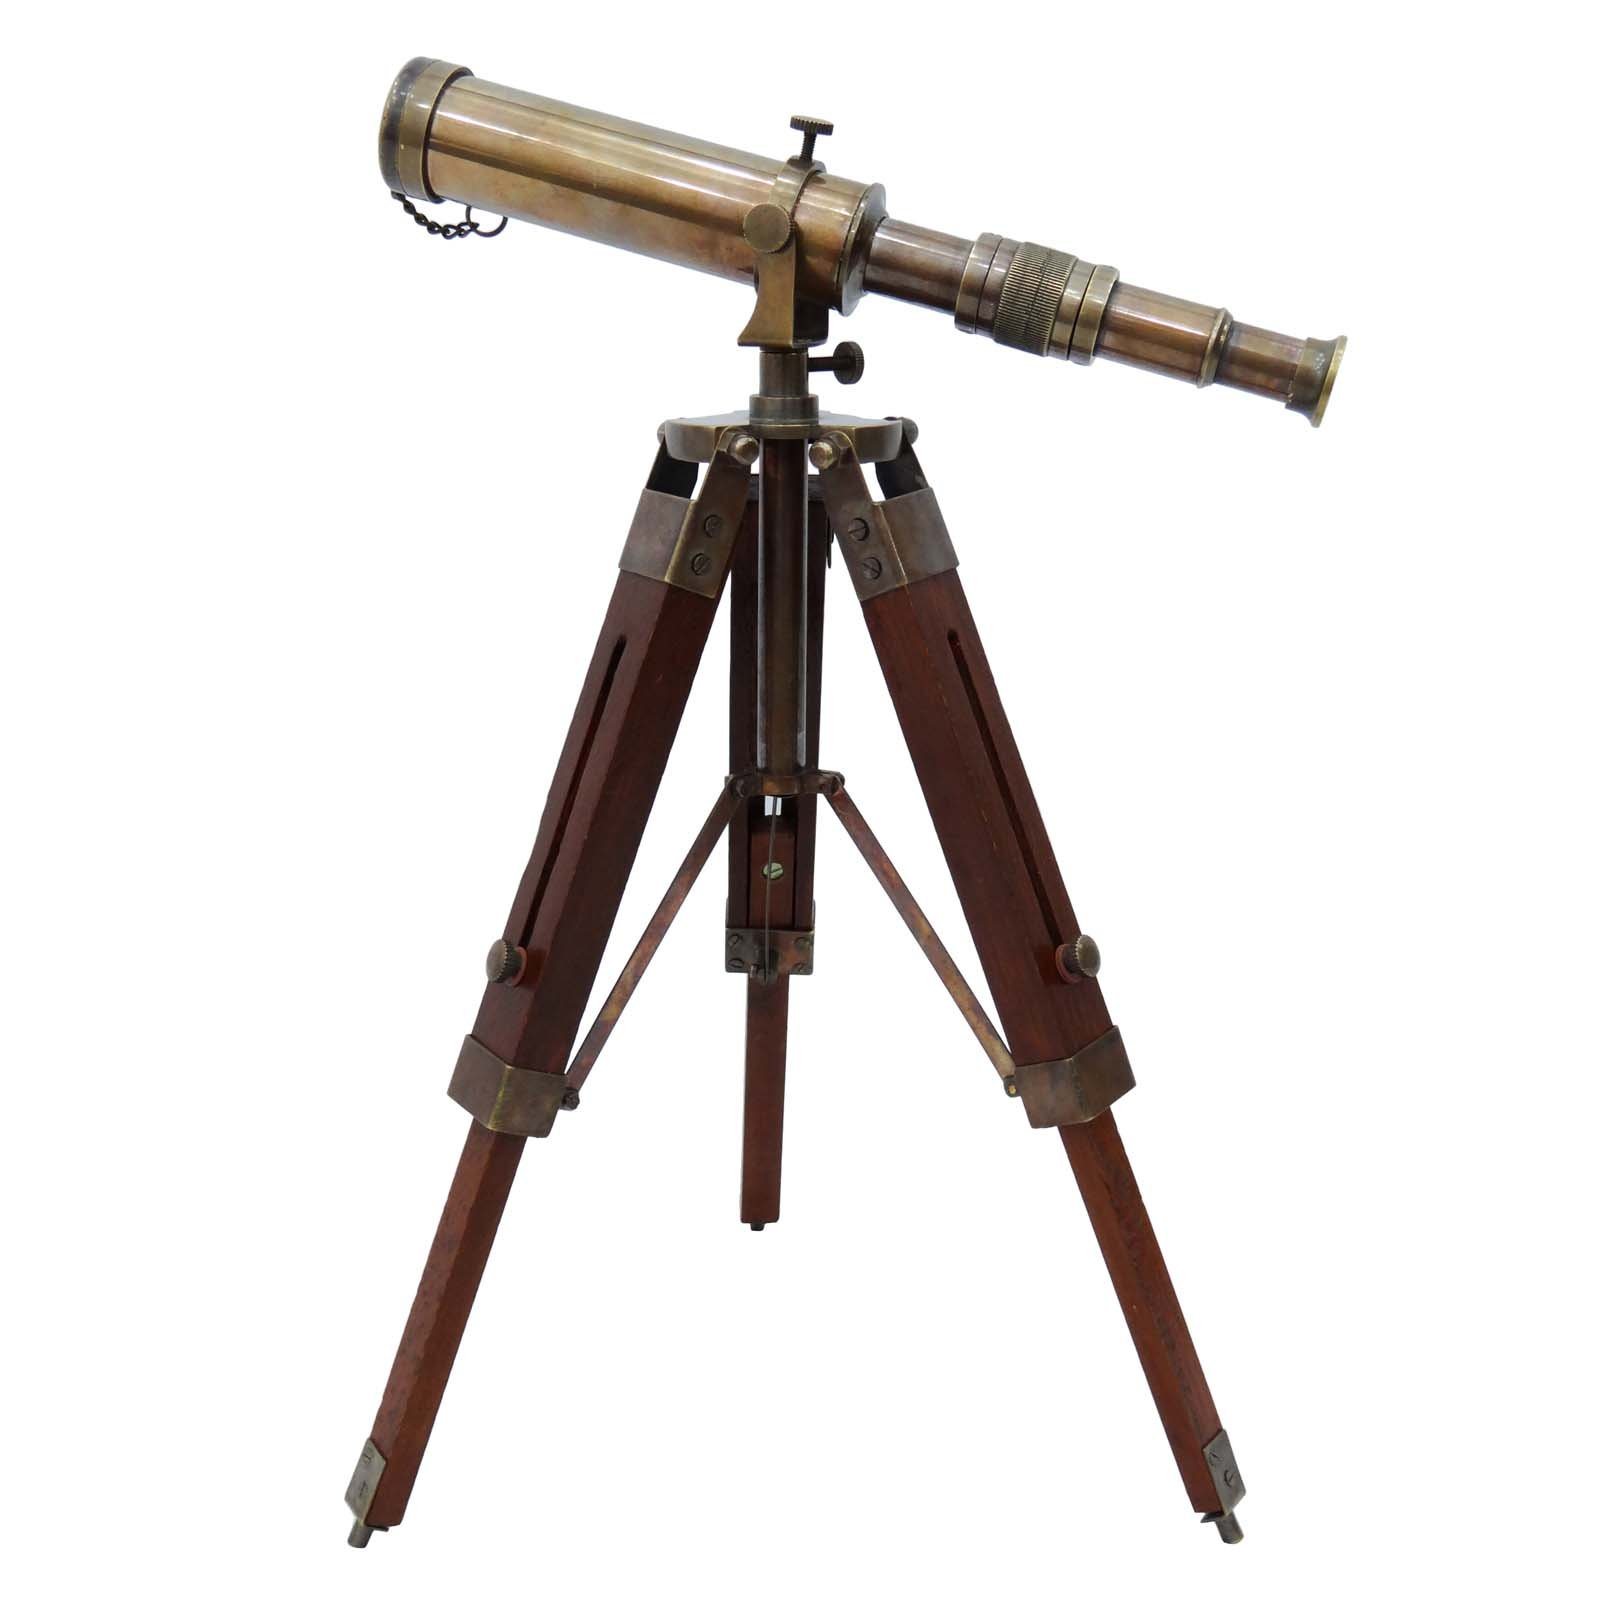 Telescope Brass Pirate Solid Spyglass Wood Decorative Stand Indian Nautical by TimeToTime